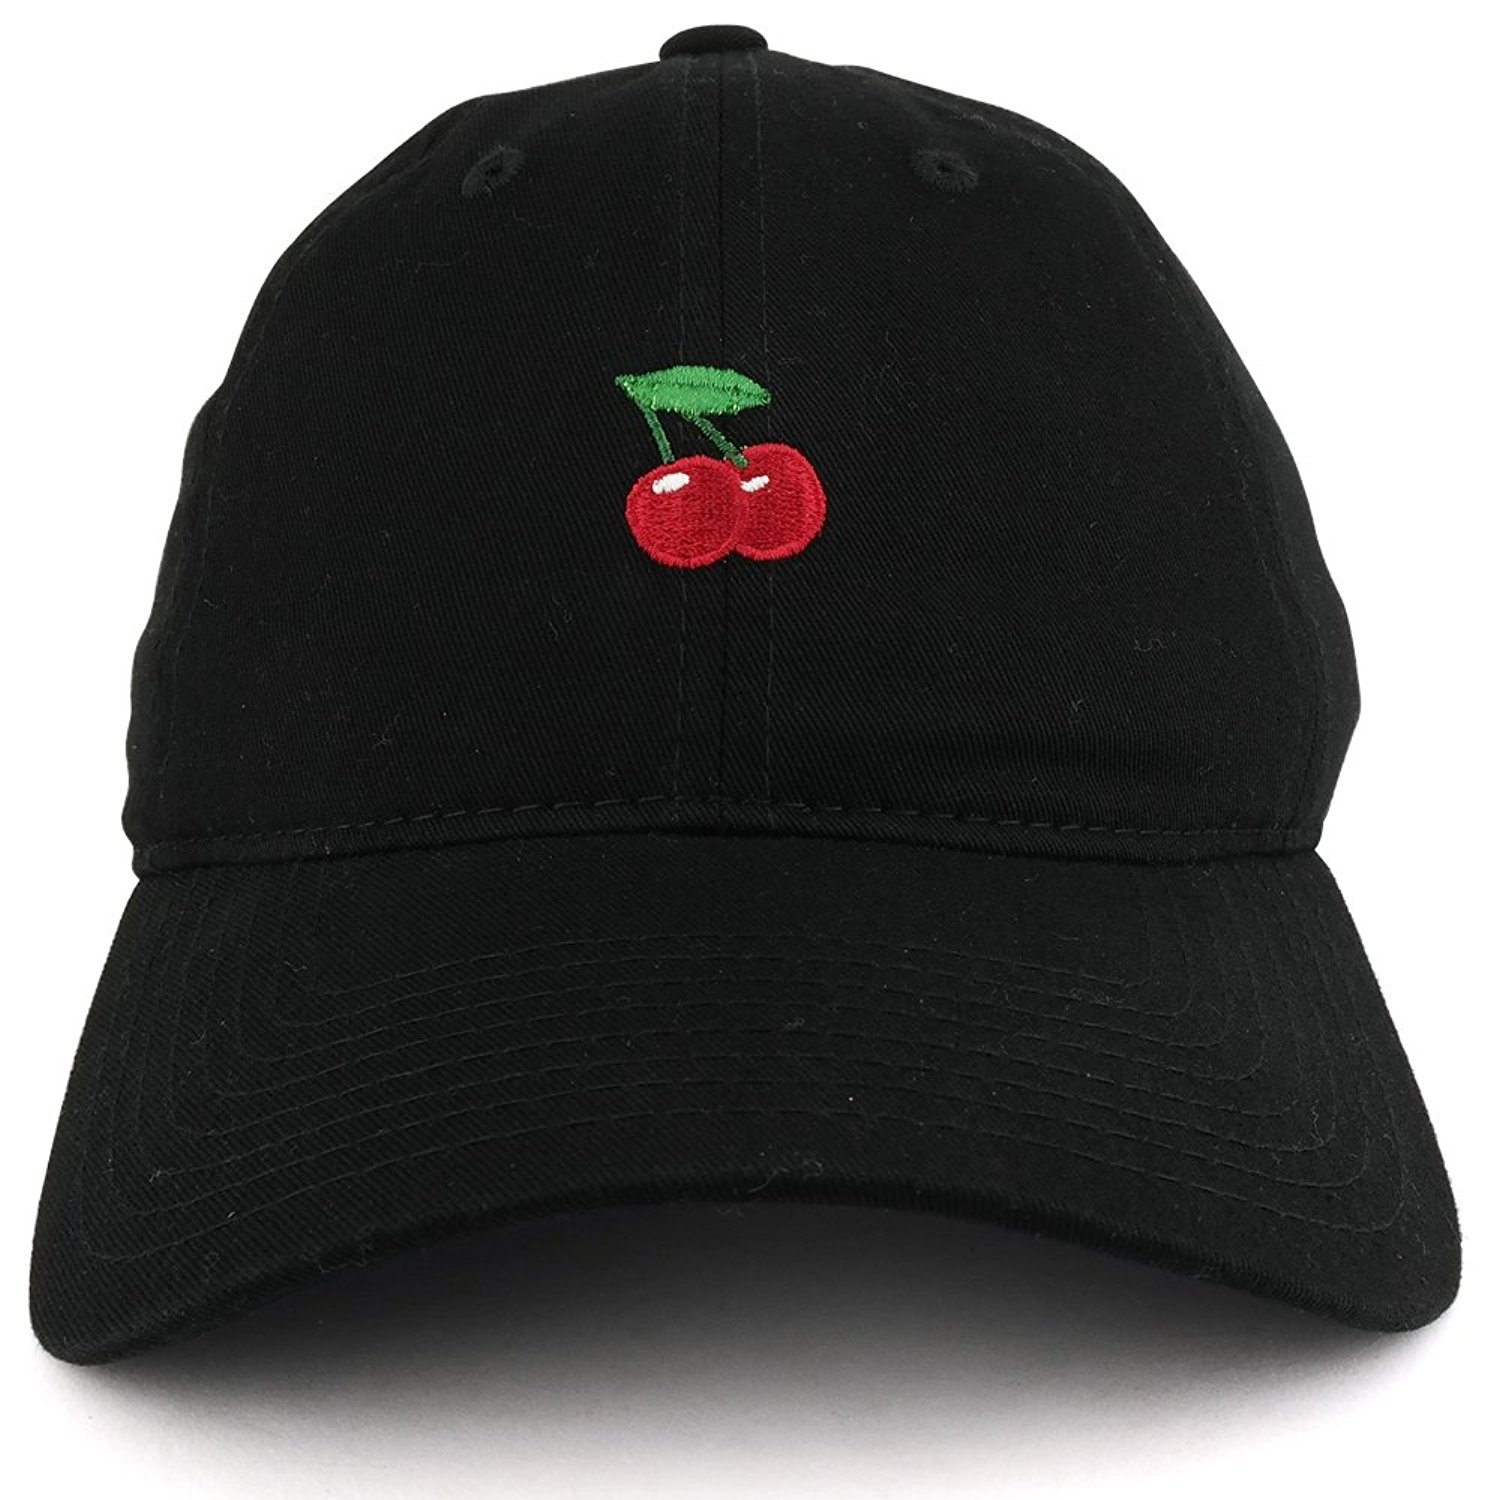 275875d4 Get Quotations · Small Cherry Embroidered Washed Cotton Soft Crown  Adjustable Dad Hat